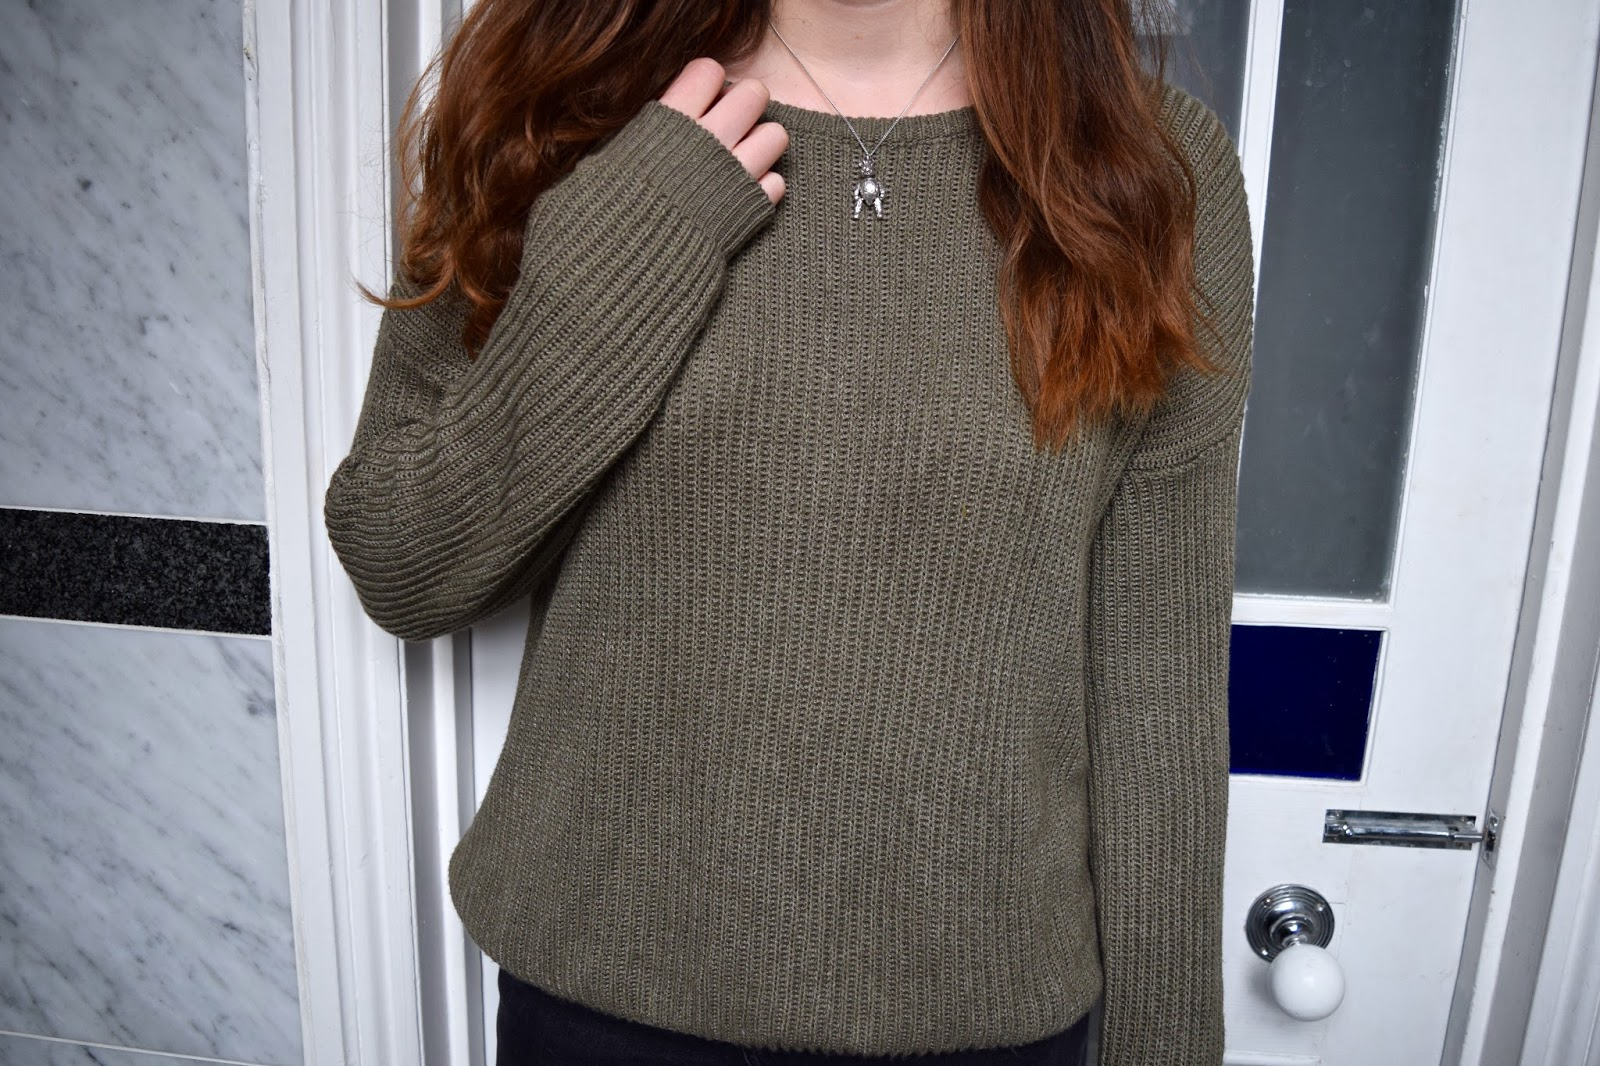 A Brandy Melville Haul Charlottes Road